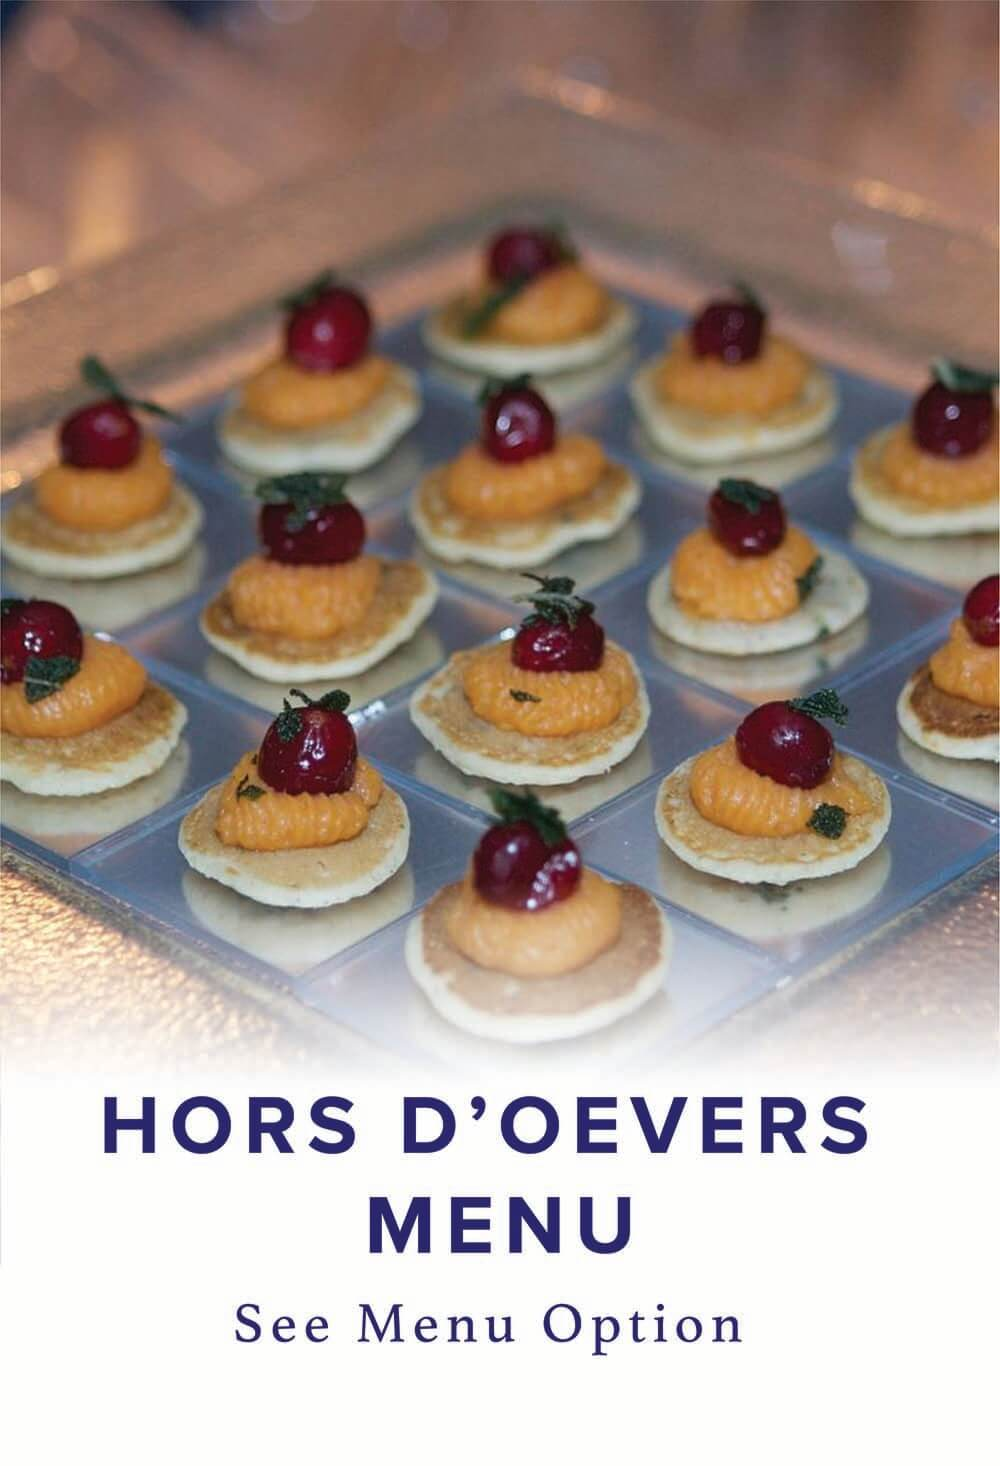 Hors D'Oeuvres Menu selection